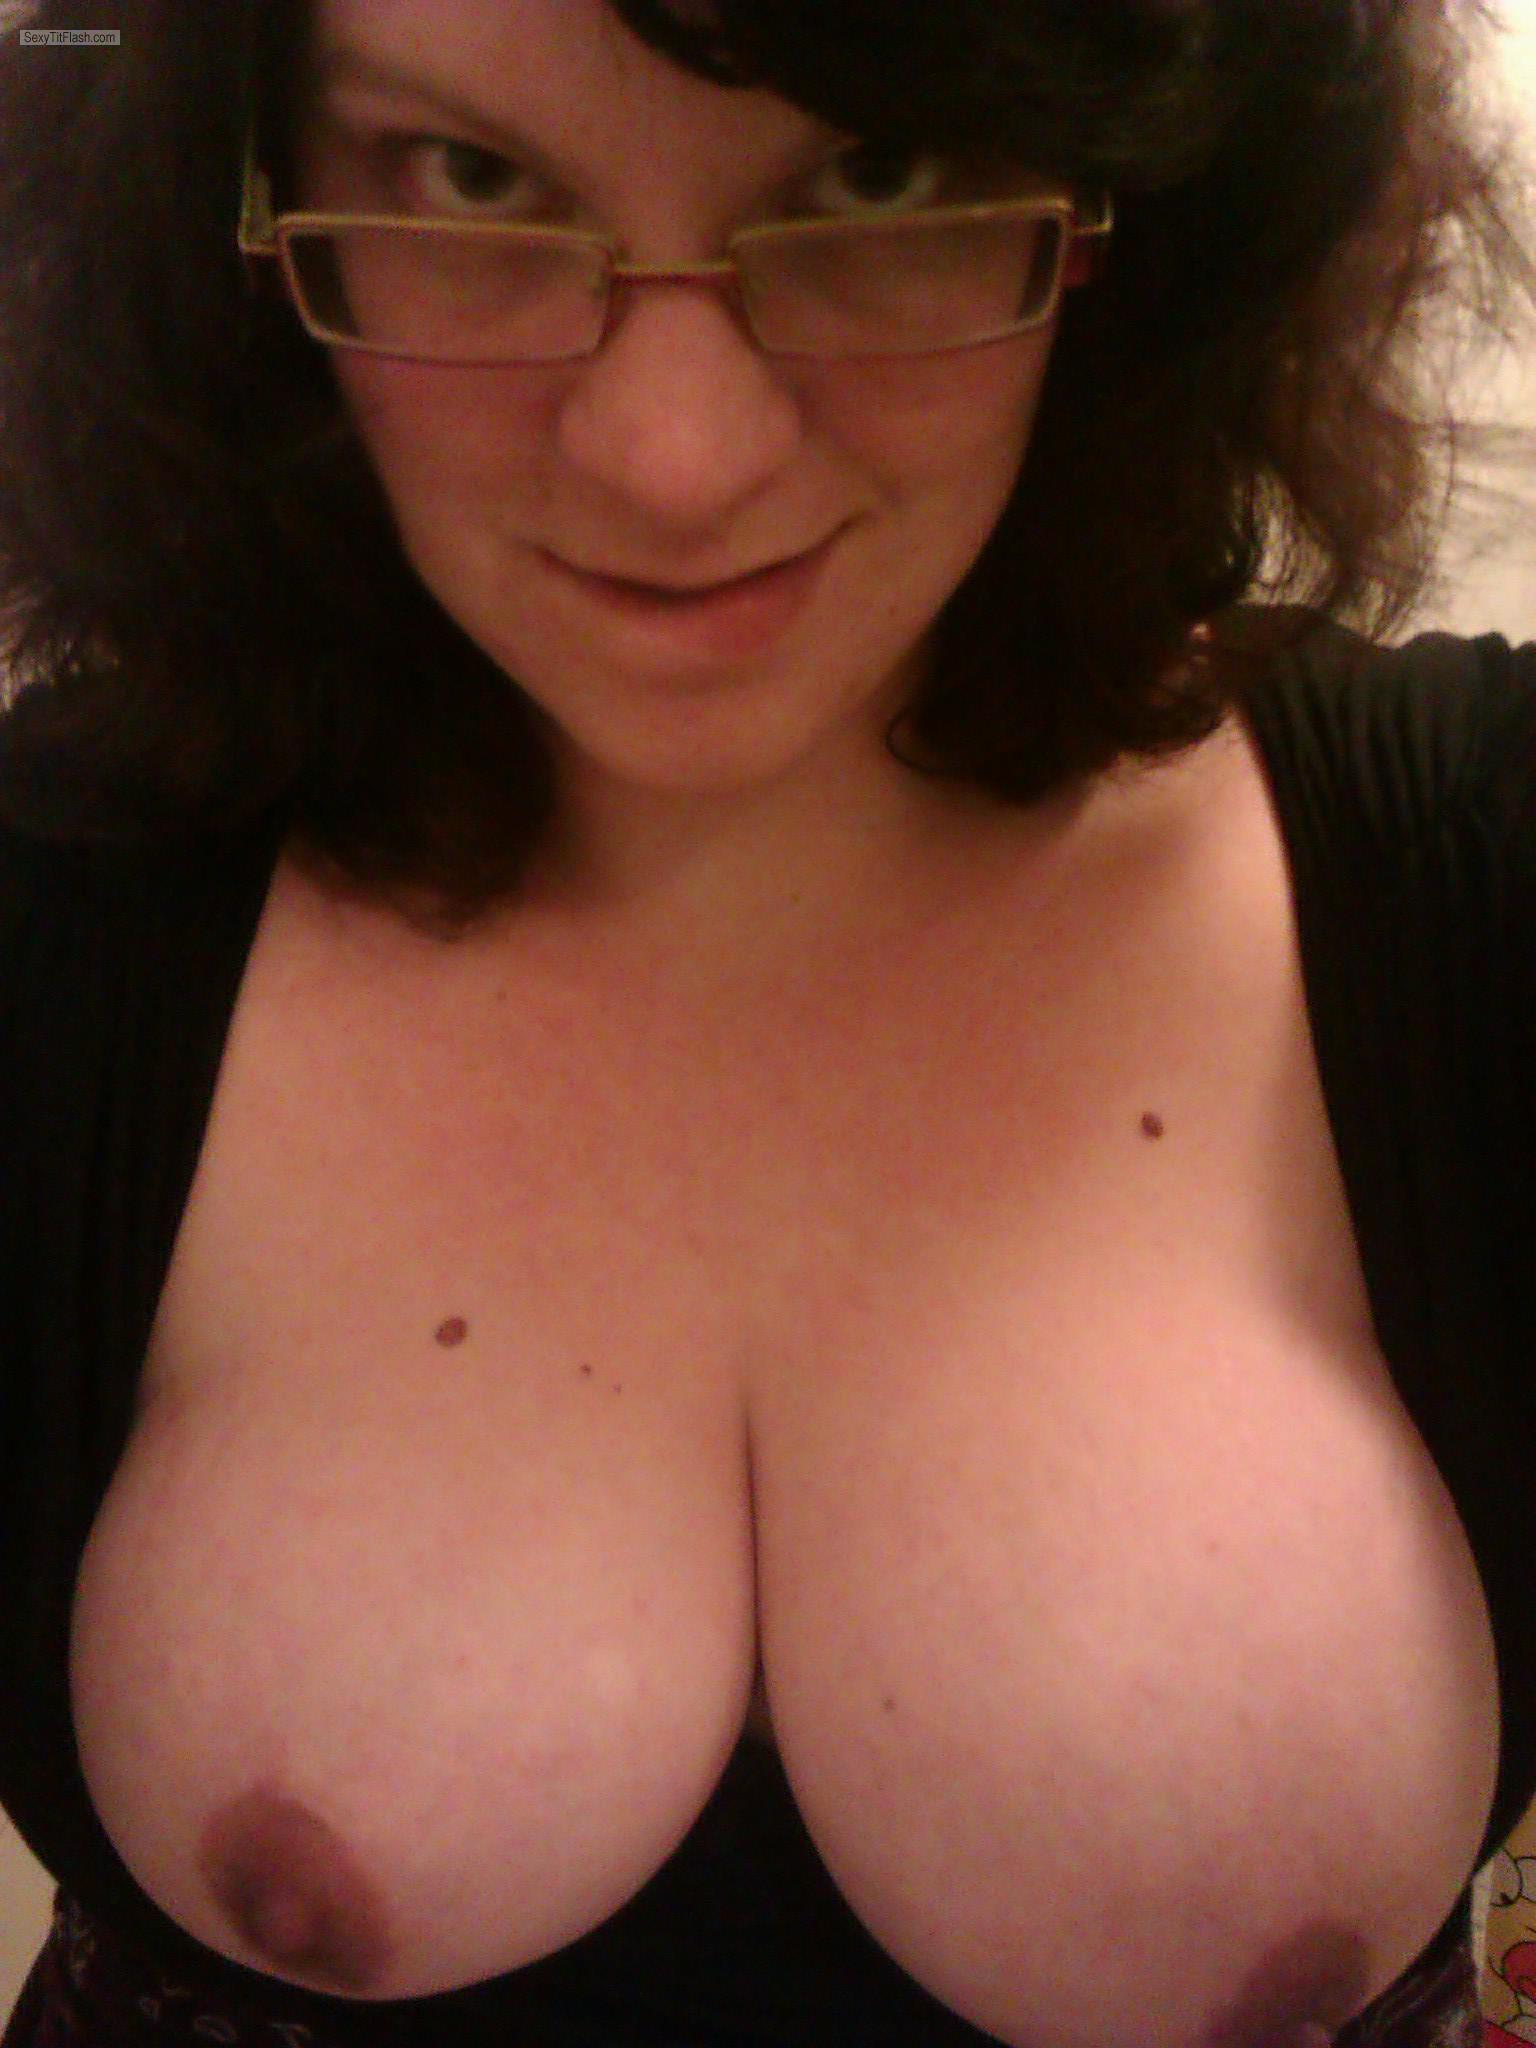 My Big Tits Topless Selfie by Assie